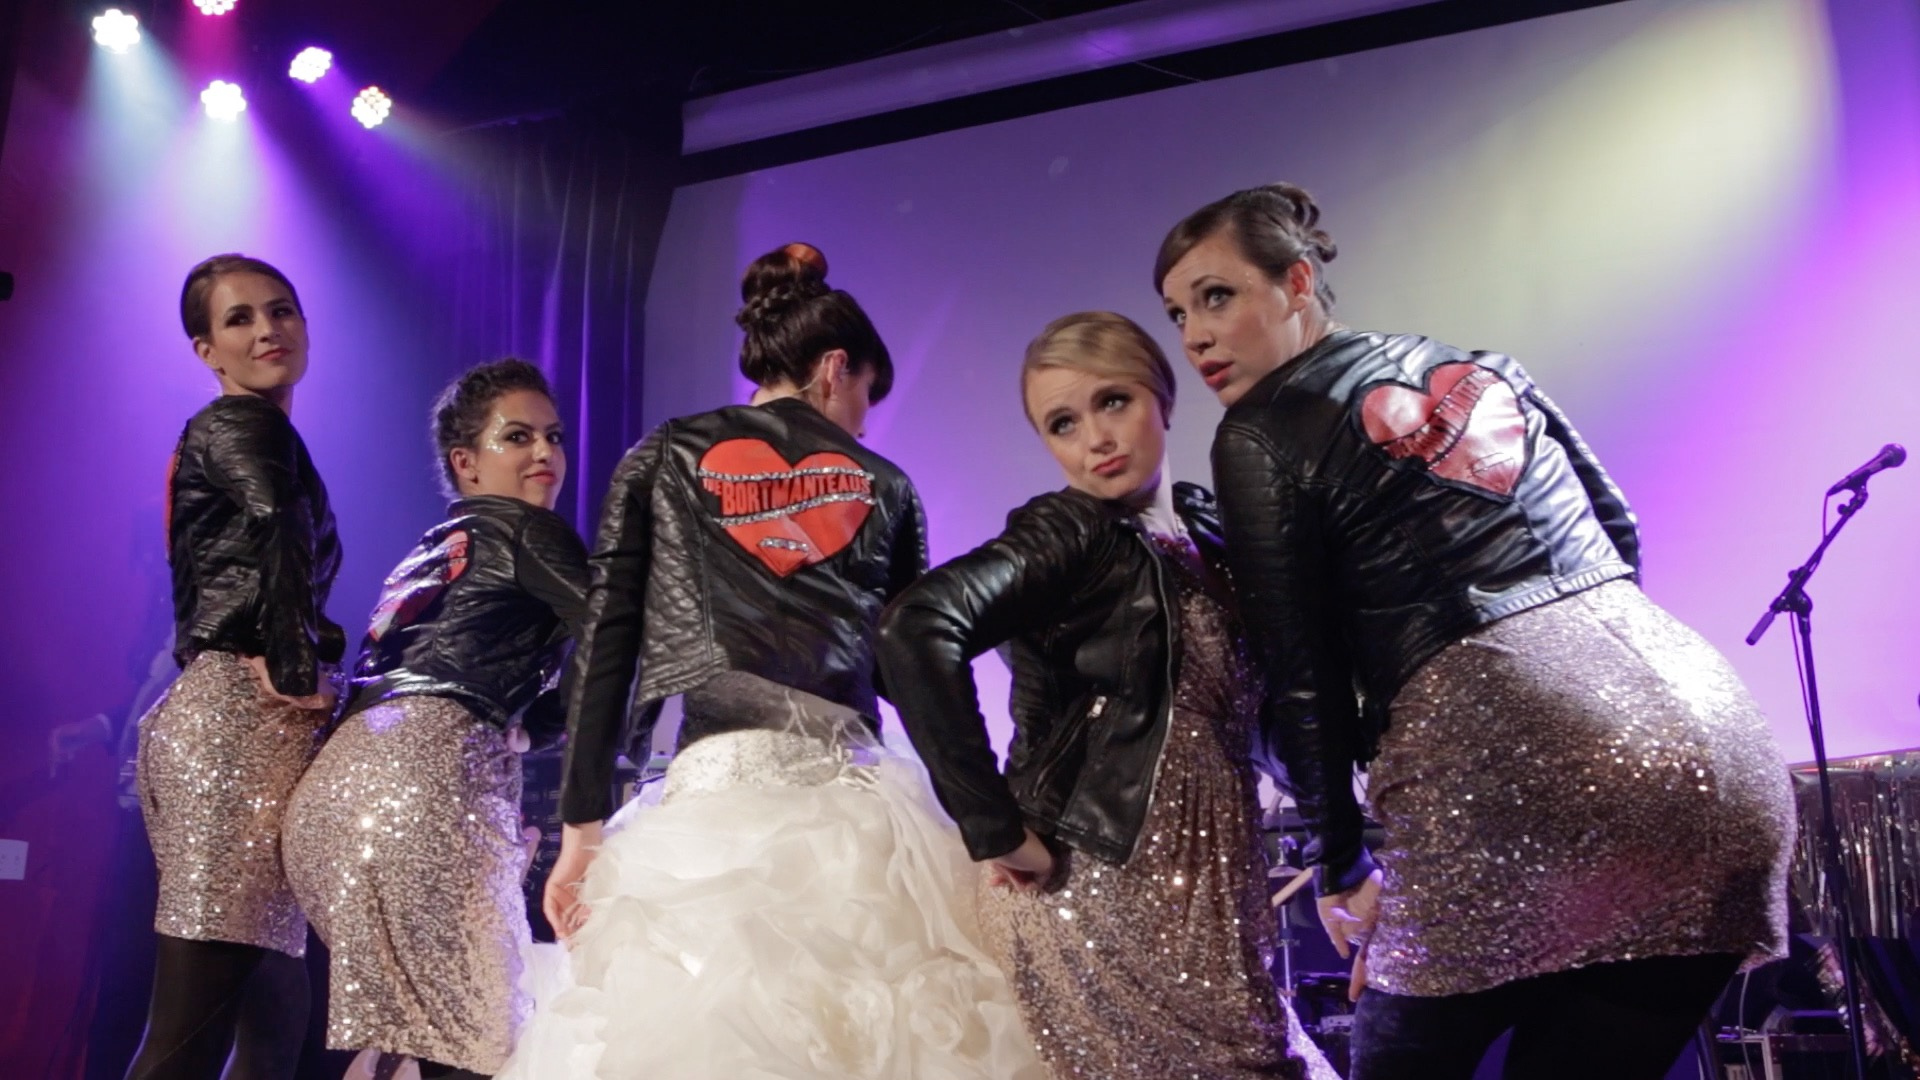 Bride bridesmaids custom leather jackets backup singers.jpg